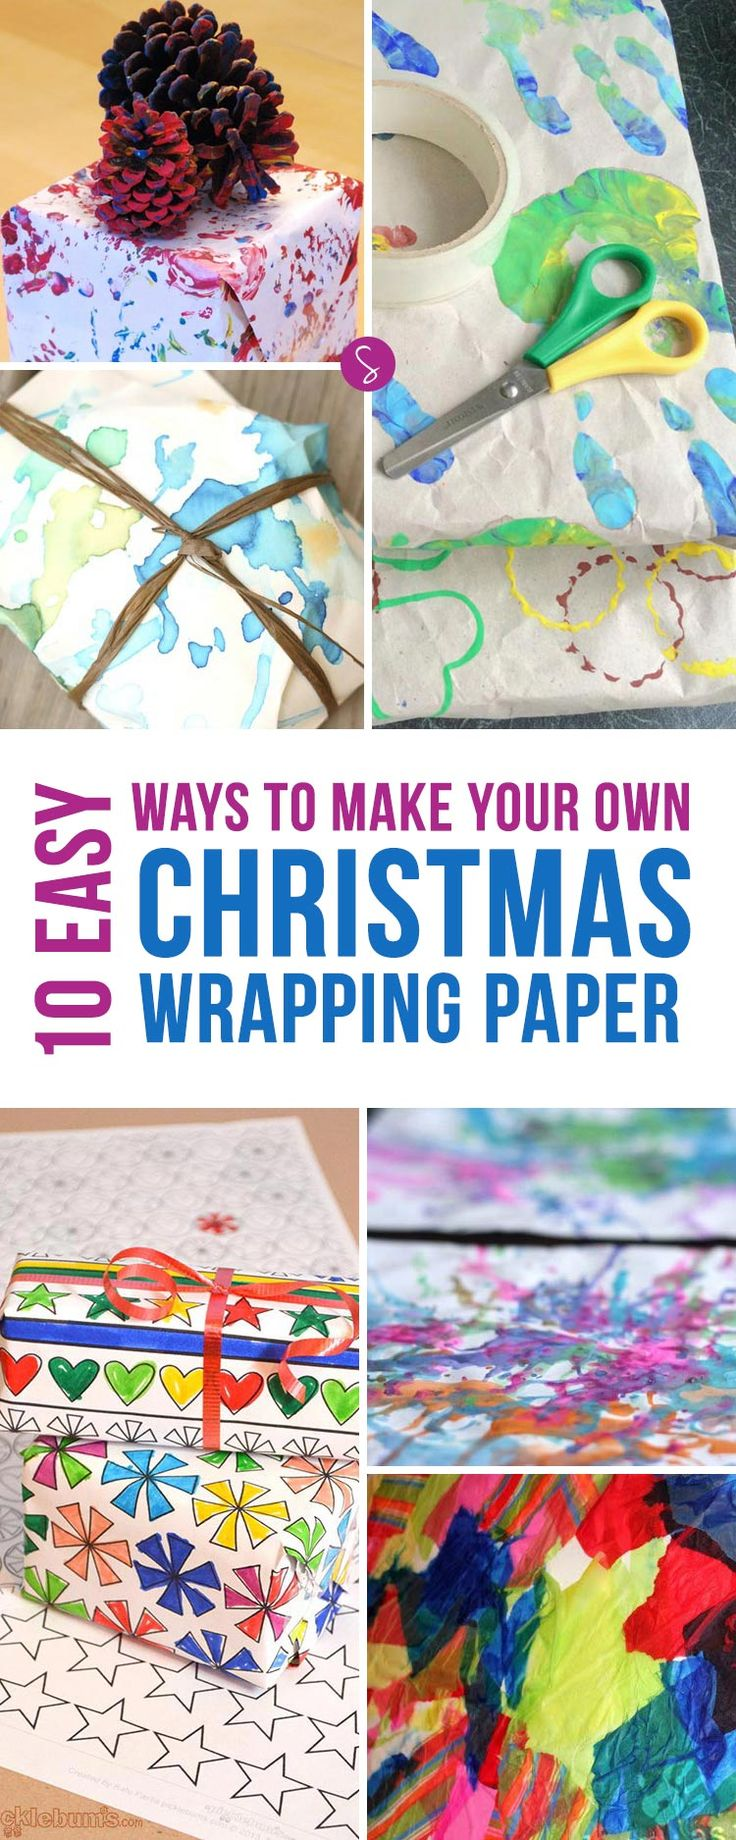 17 best ideas about wrapping paper crafts on pinterest for Best christmas wrapping paper